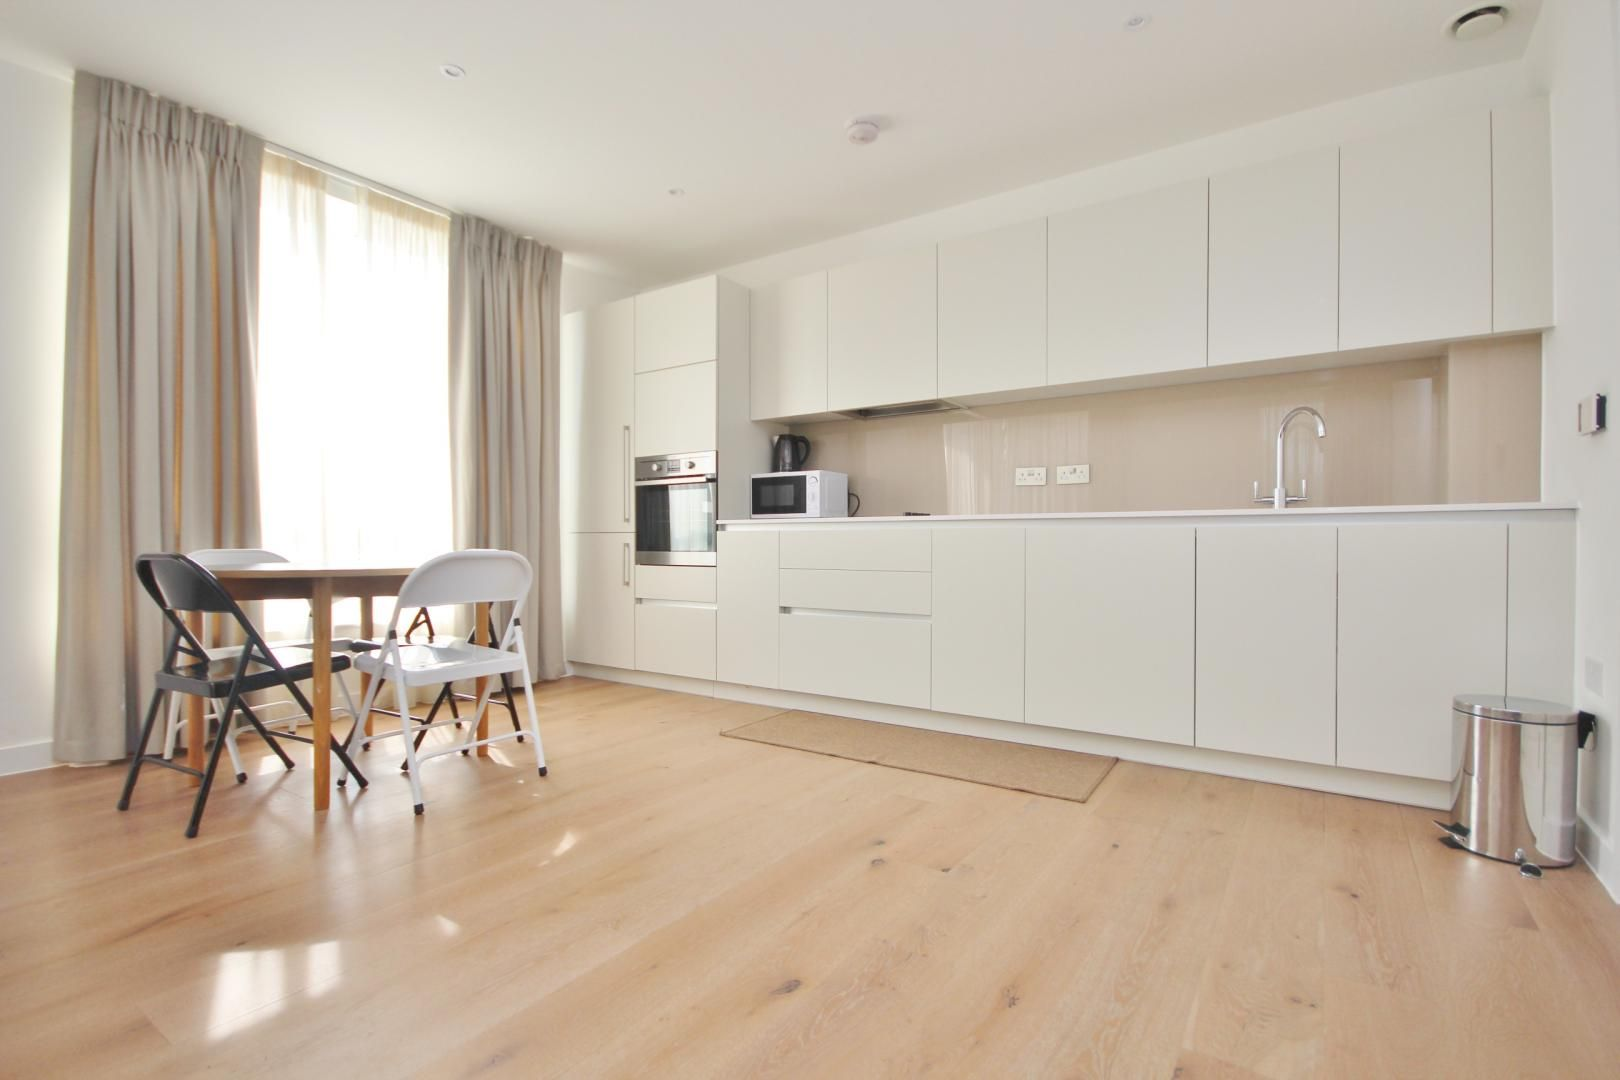 2 bed flat to rent in Ottley Drive - Property Image 1